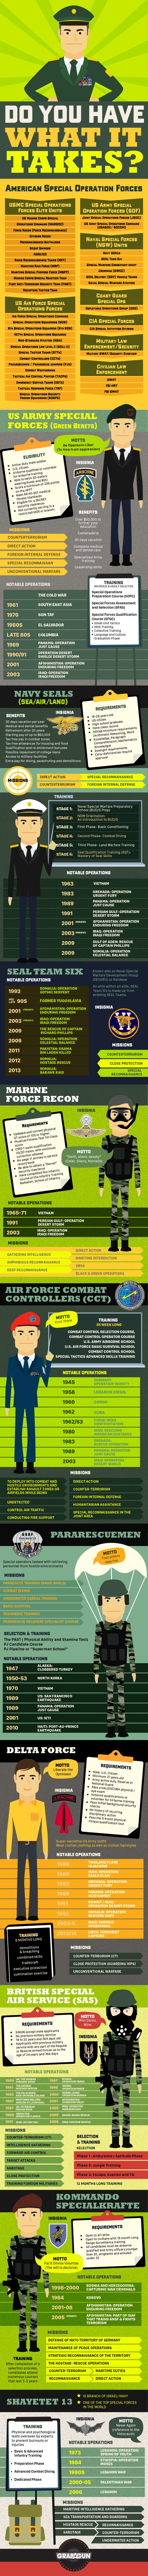 Do You Have What It Takes Infographic